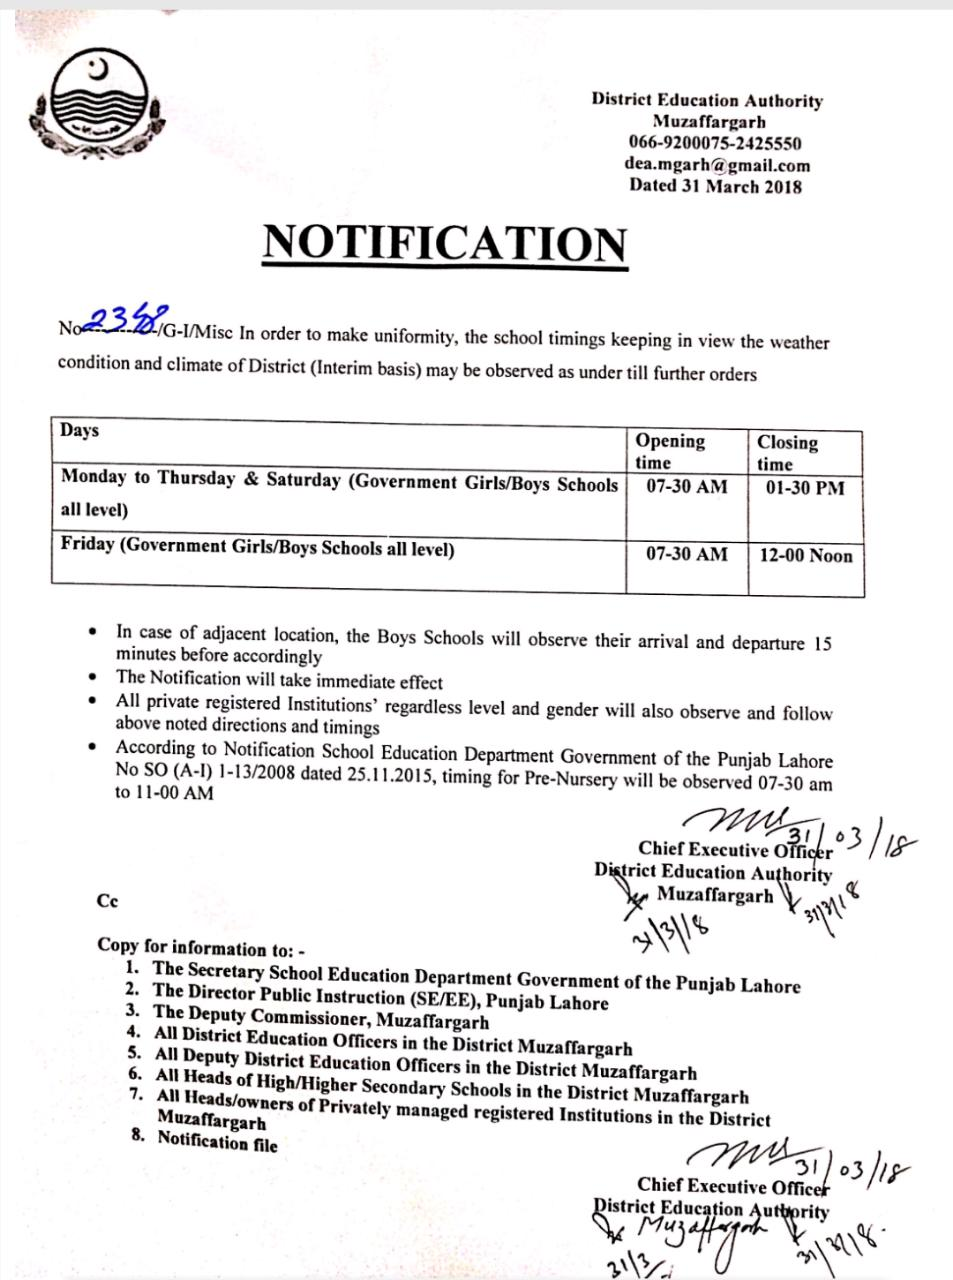 Notification of District Muzaffargarh School Timings 2018